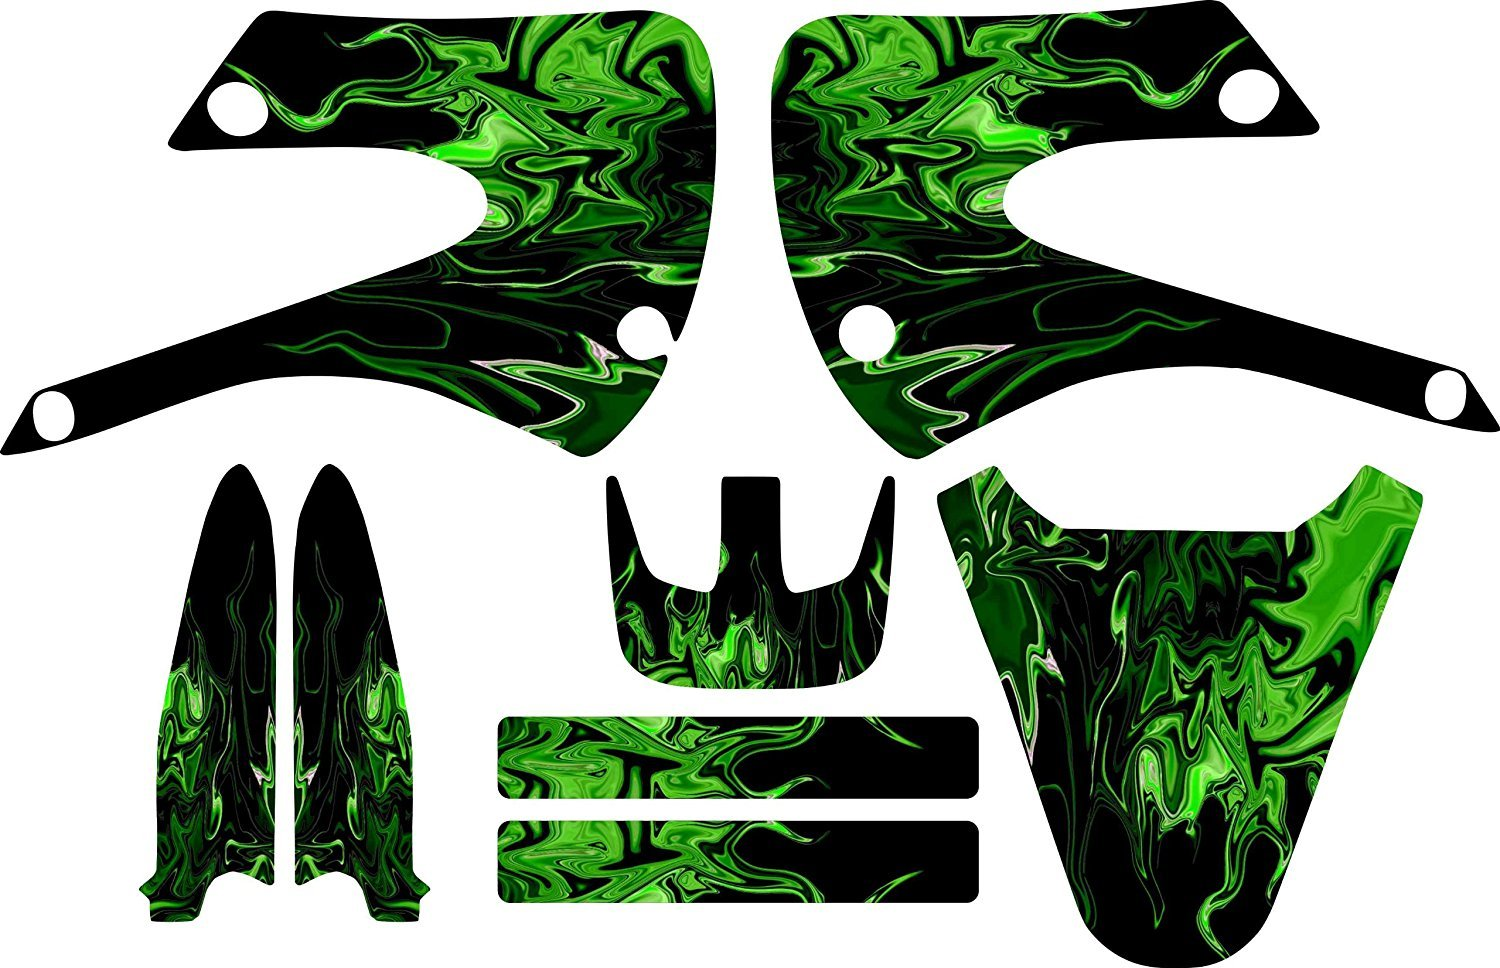 Kawaskai Green Flames Kx85 Kx 85 Graphic Kit 01-12 Green Graphics Decal Sticker Mx Kx100 100 Boston Decal Works COMINU001166